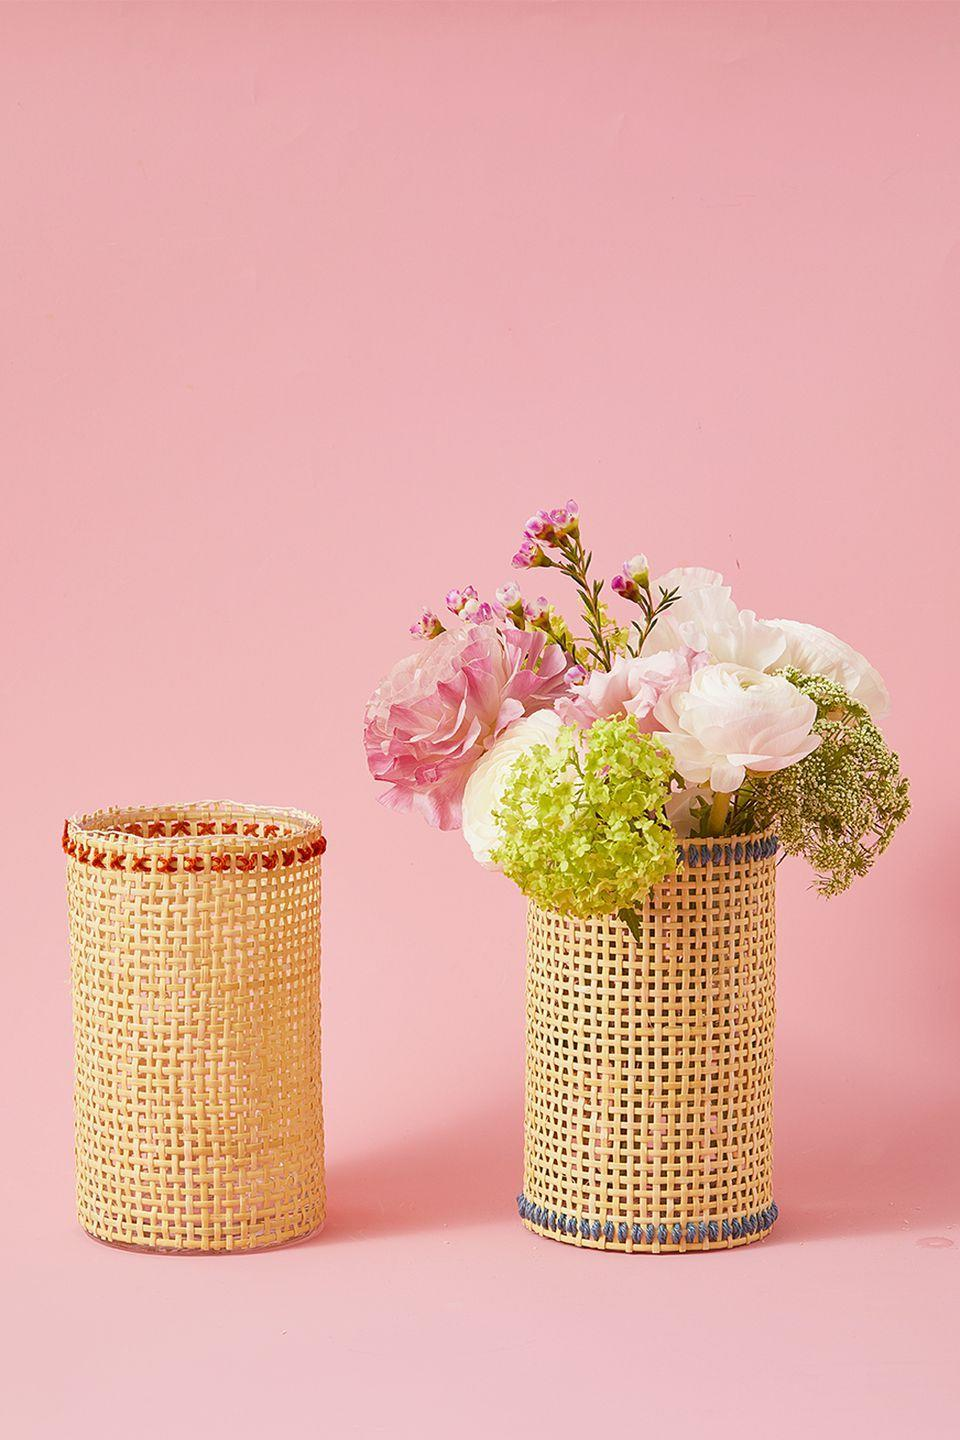 """<p>Pick flowers straight from your garden and stick them inside this boho-inspired vase. To make, cut a piece of cane webbing to fit around a glass hurricane vase. Thread a needle with contrasting yarn or embroidery thread and stitch a line or criss cross pattern along the edges. Wrap the webbing around the vase and adhere with hot glue.</p><p><a class=""""link rapid-noclick-resp"""" href=""""https://www.amazon.com/Pressed-Cane-Webbing-splines-Instructions/dp/B07XQZ47QF/?tag=syn-yahoo-20&ascsubtag=%5Bartid%7C10055.g.1906%5Bsrc%7Cyahoo-us"""" rel=""""nofollow noopener"""" target=""""_blank"""" data-ylk=""""slk:SHOP CANE WEBBING"""">SHOP CANE WEBBING</a></p>"""